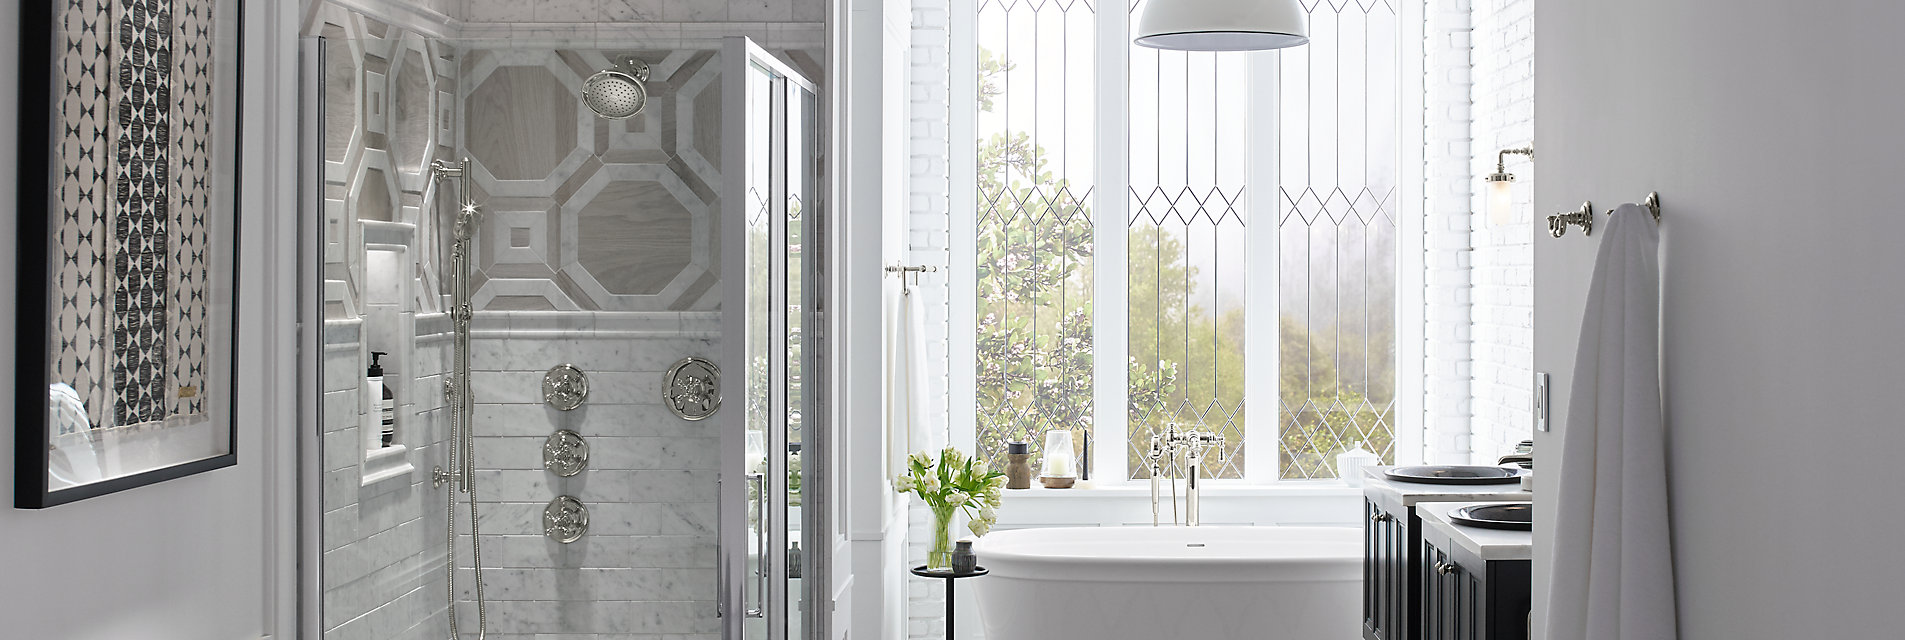 KOHLER Canada | Toilets, Showers, Sinks, Faucets and More